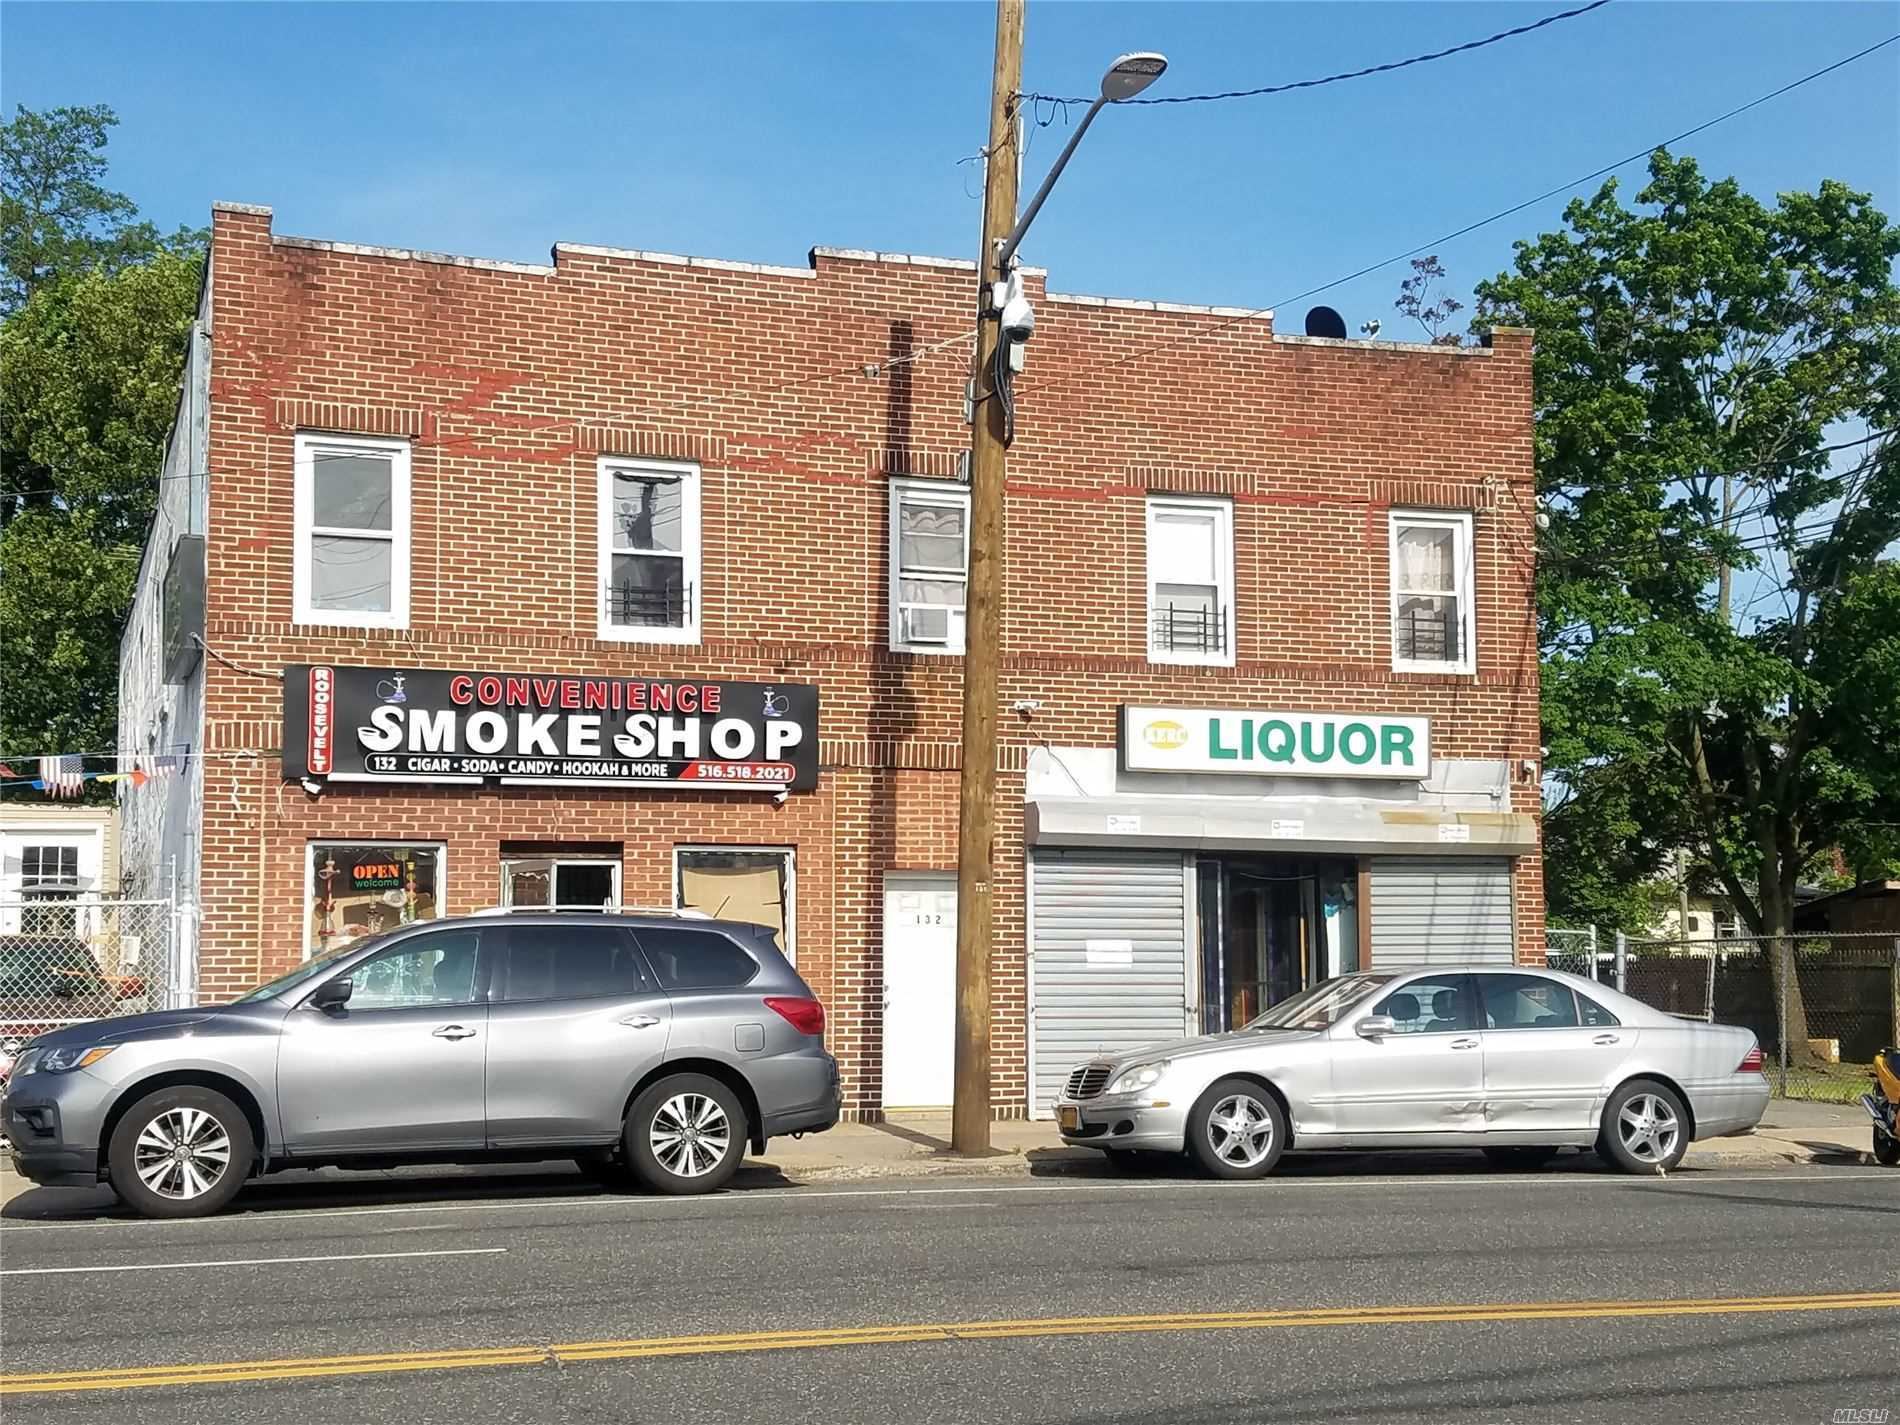 Commercial for sale in , Roosevelt, NY ,11575